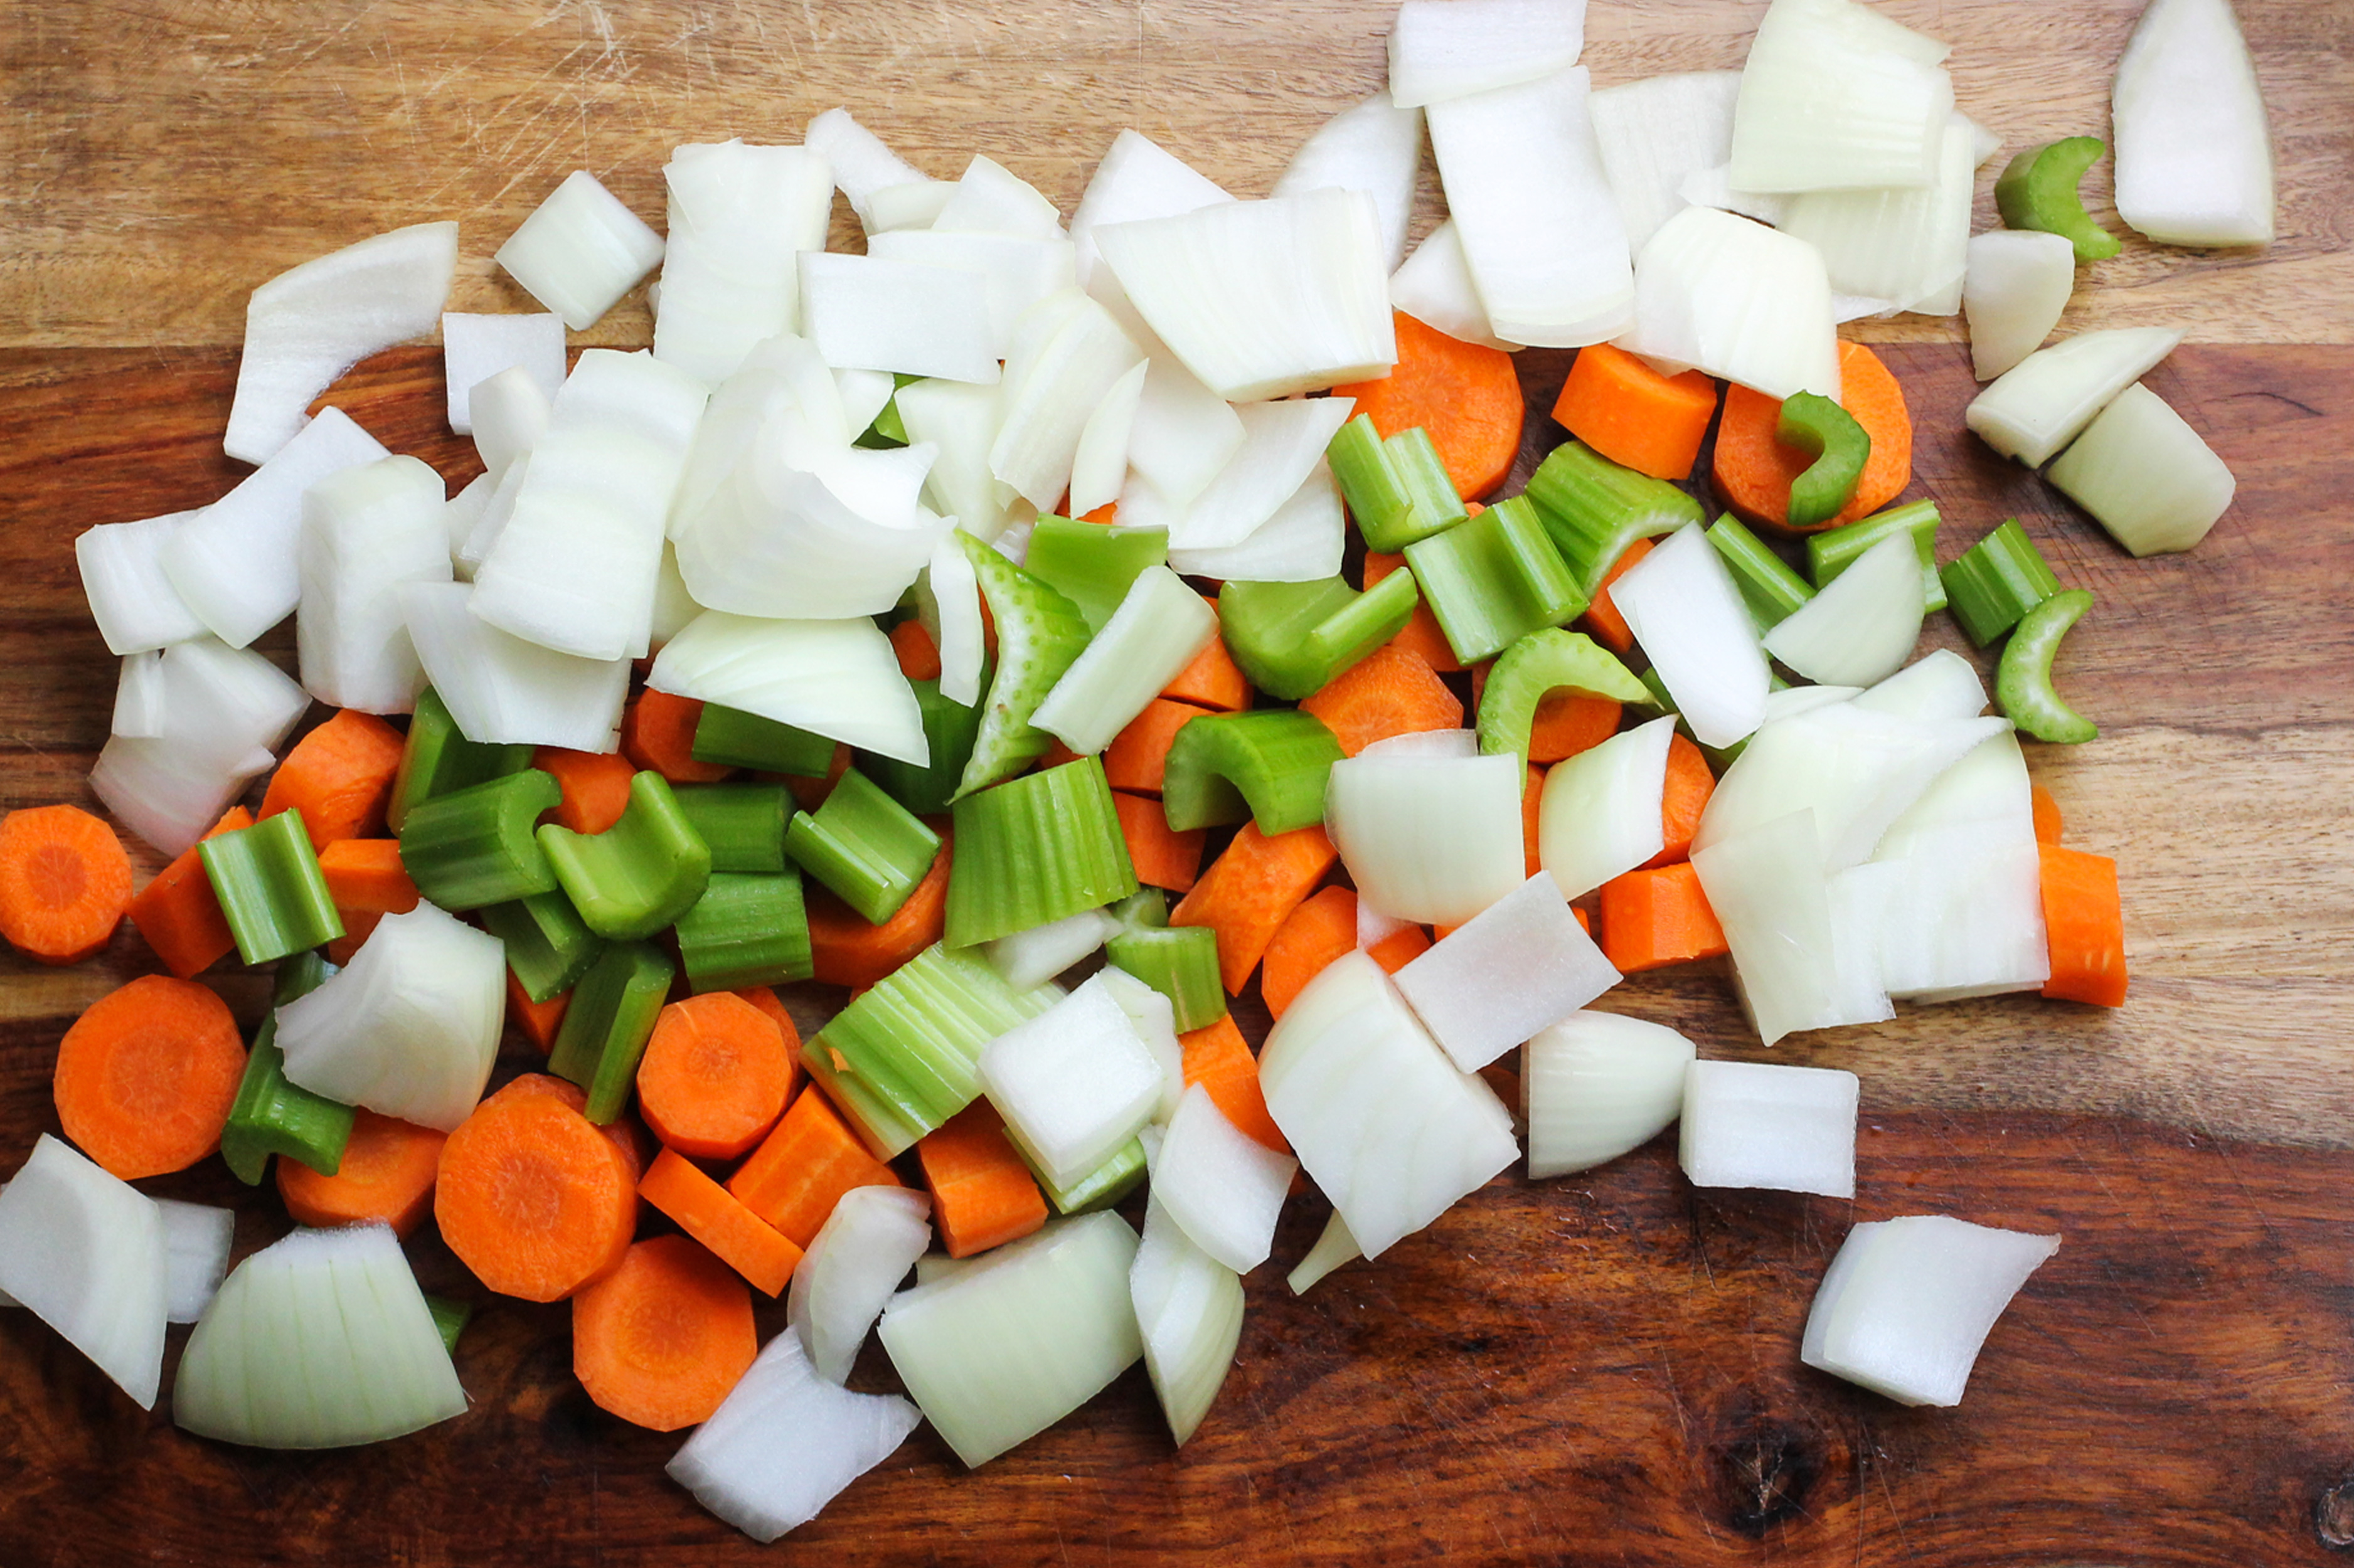 Chopped Onion, Celery and Carrot